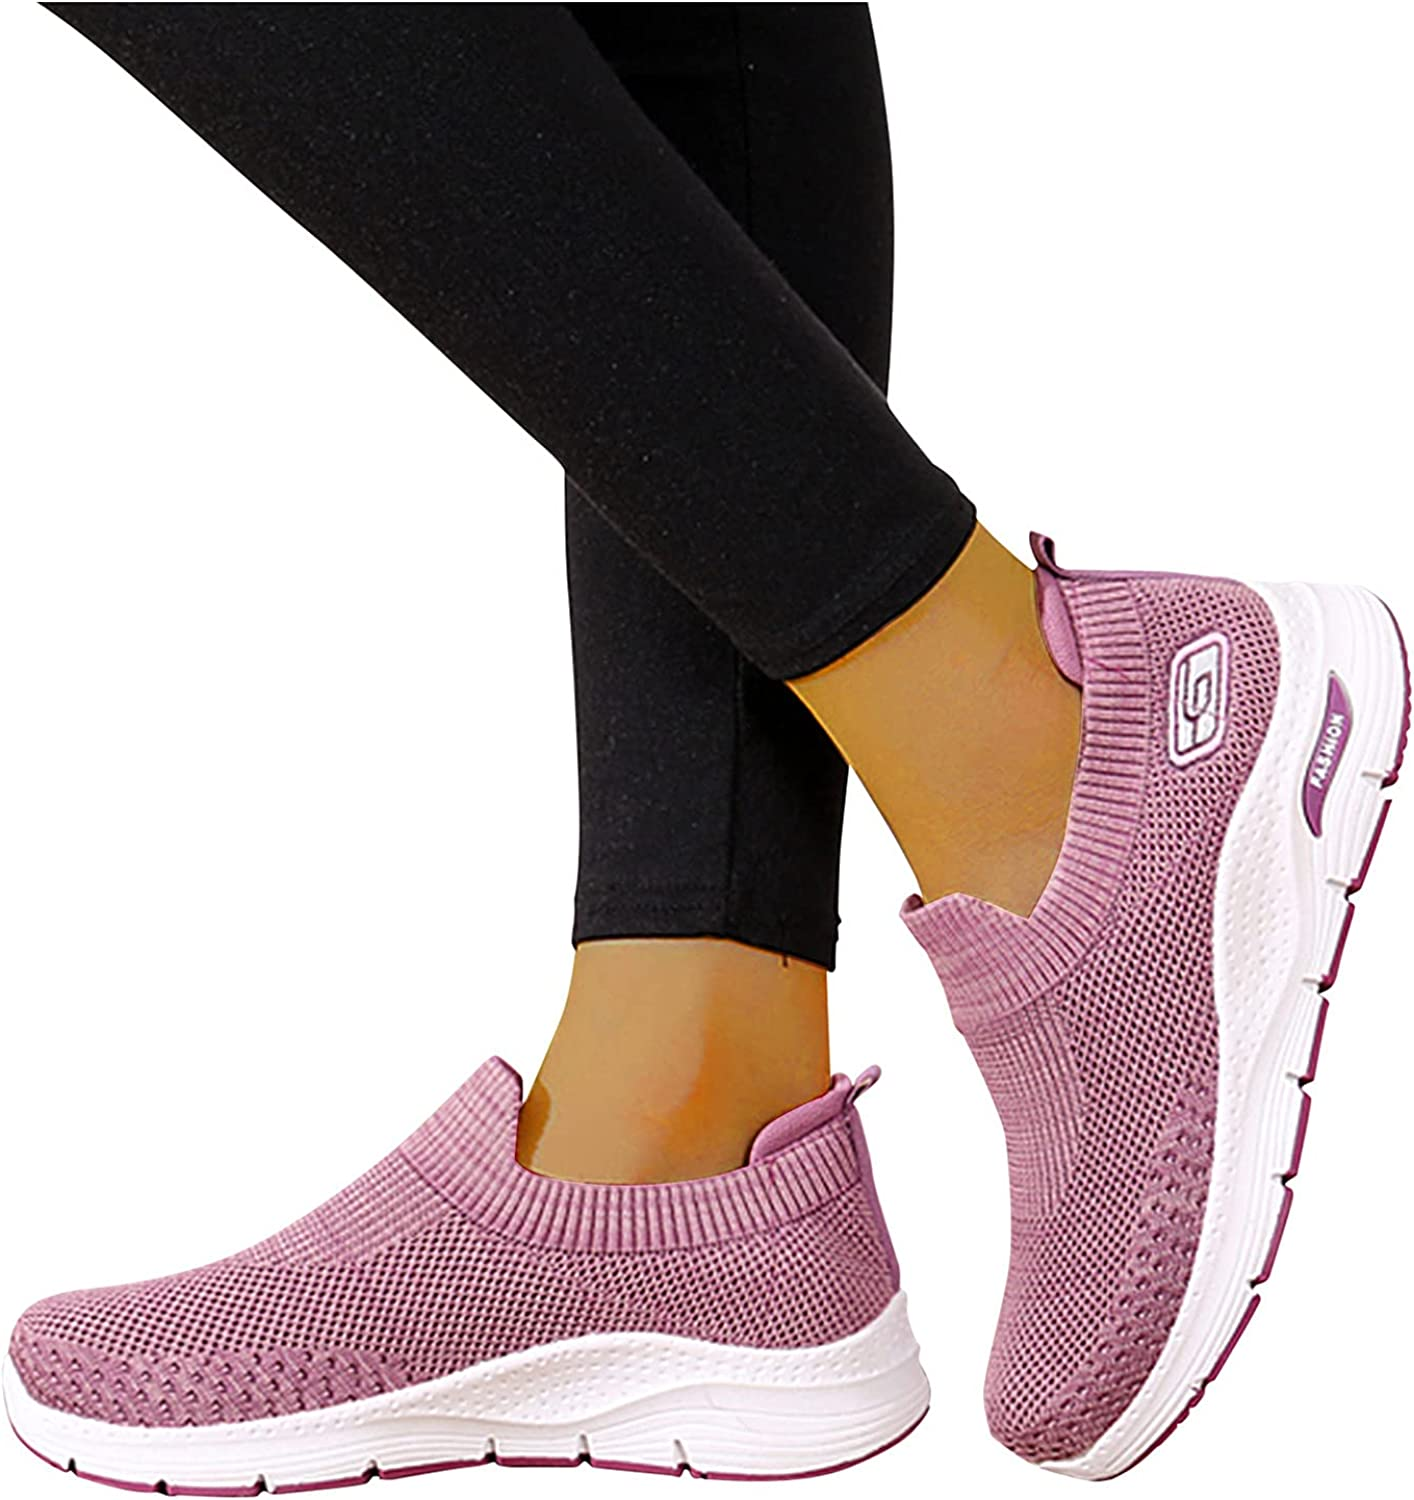 Chunky BootsSock Walking Sneakers For Women With Arch Support, Women'S Leisure Breathable Mesh Outdoor Fitness Running Sport Sneakers Shoes Comfortable Work Sneakers